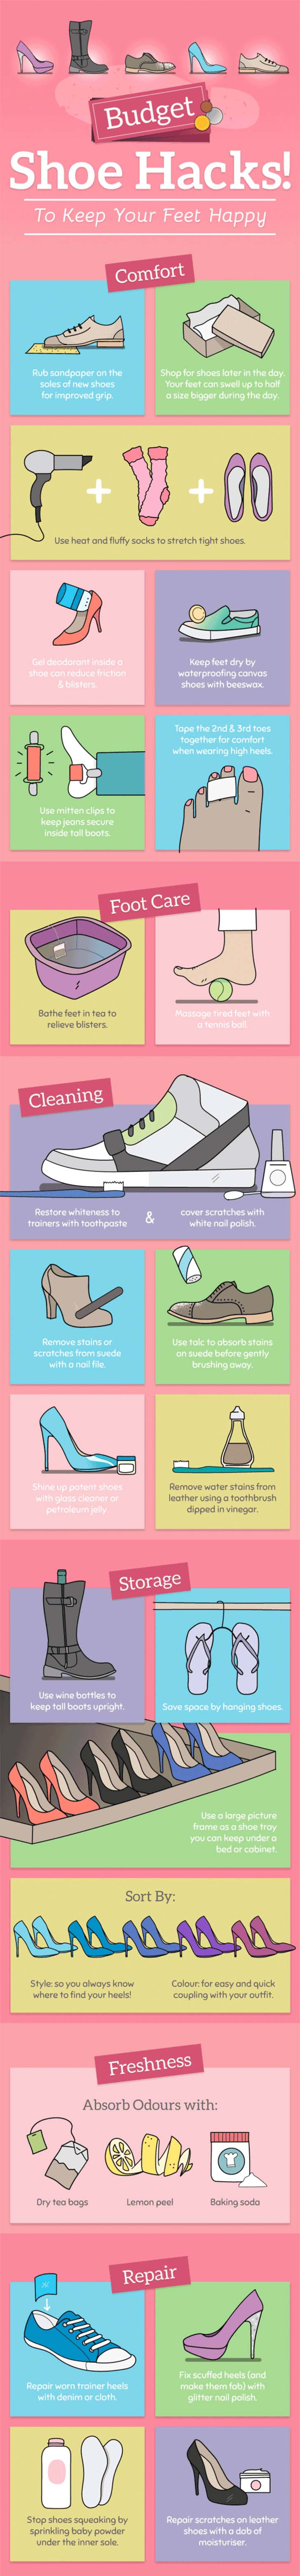 Shoe Hacks For Your Happy Feet